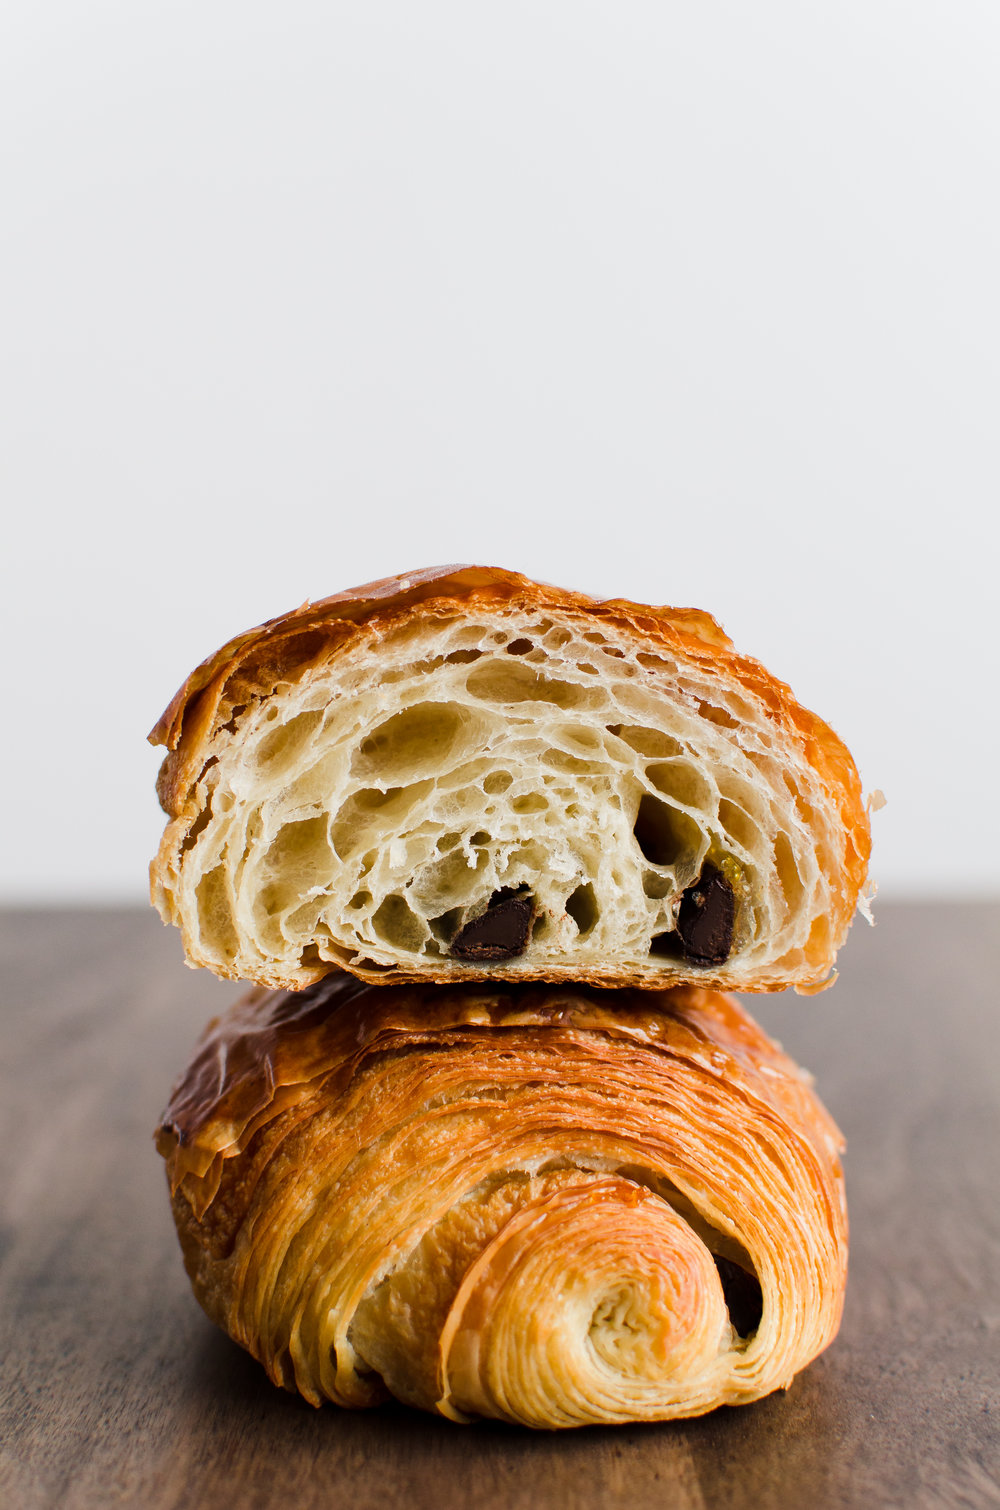 Chocolate Croissant   French Flour, Japanese Flour, Egg, Isigny Butter, Dark Chocolate, Yuzu Zest